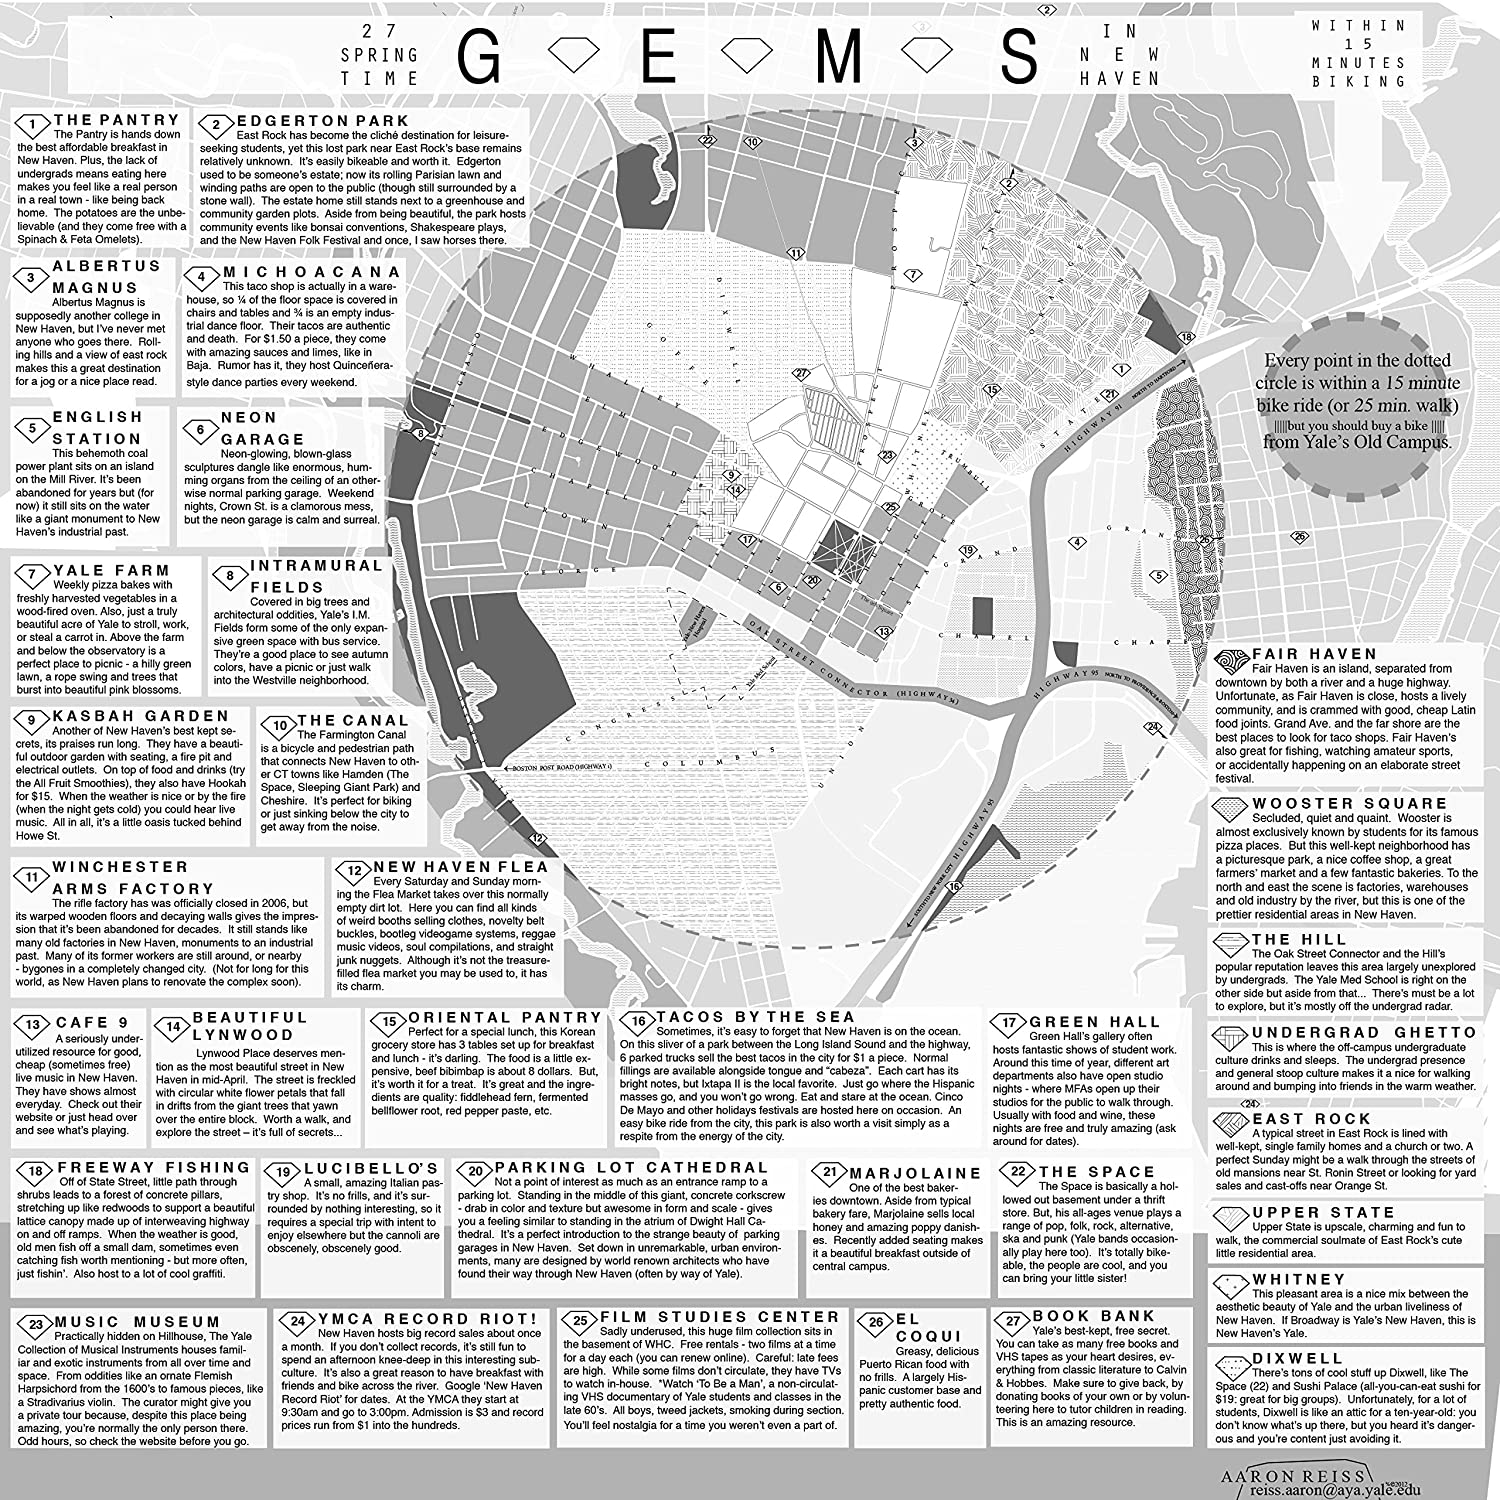 Amazon com: Home Comforts Laminated Poster Map of 27 Gems in New